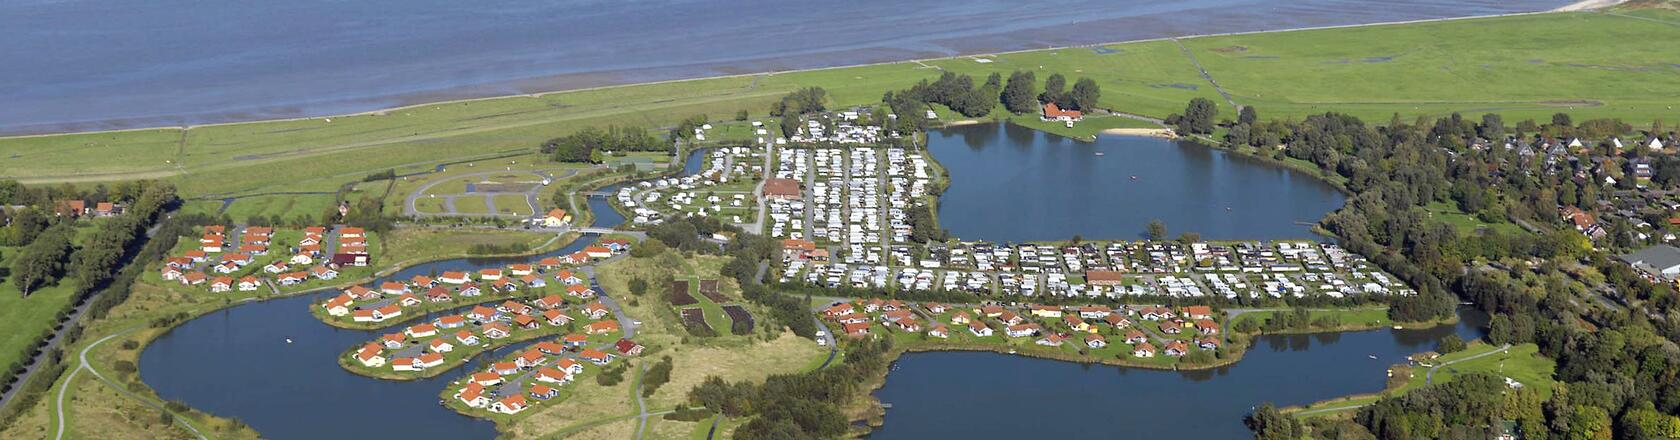 Otterndorf, Nordsee in Germany - Rent a holiday home  with DanCenter